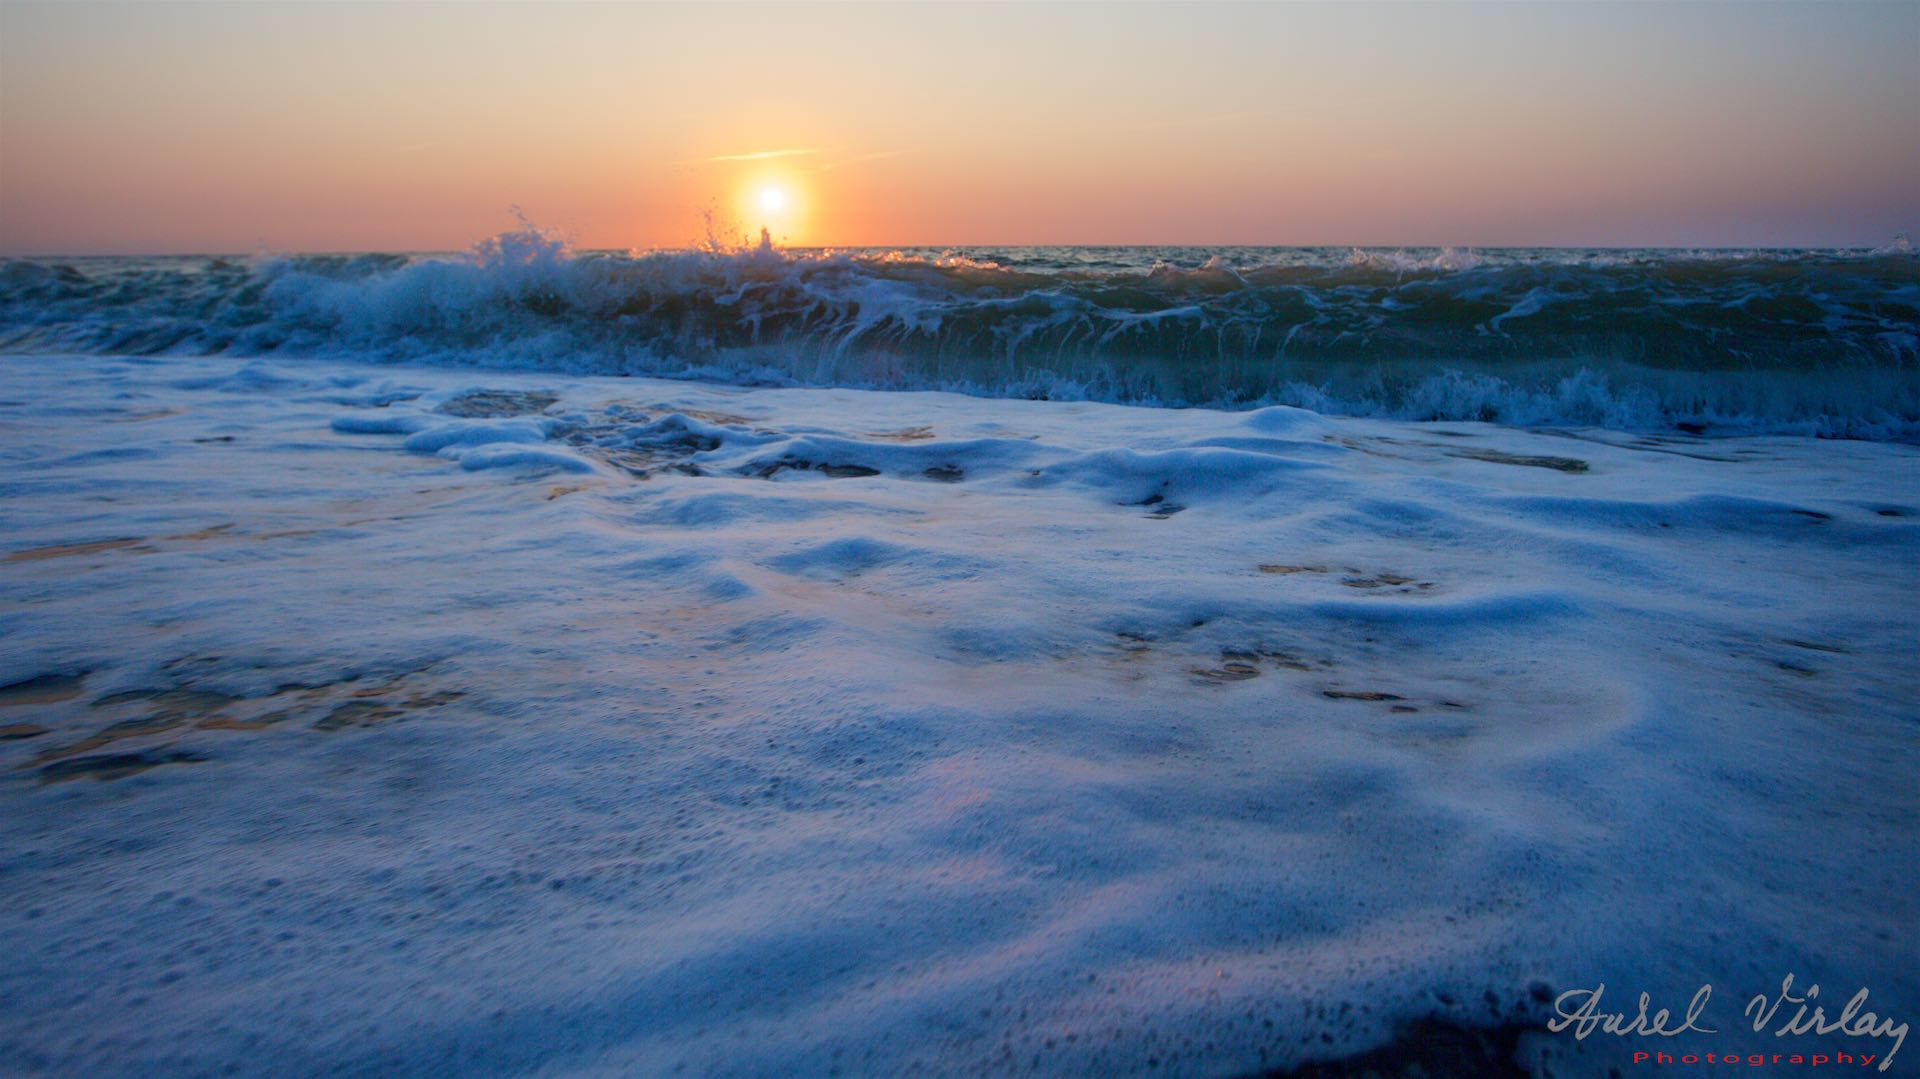 Black Sea waves in Vama Veche. Photograph with Canon EOS 5D Mark III